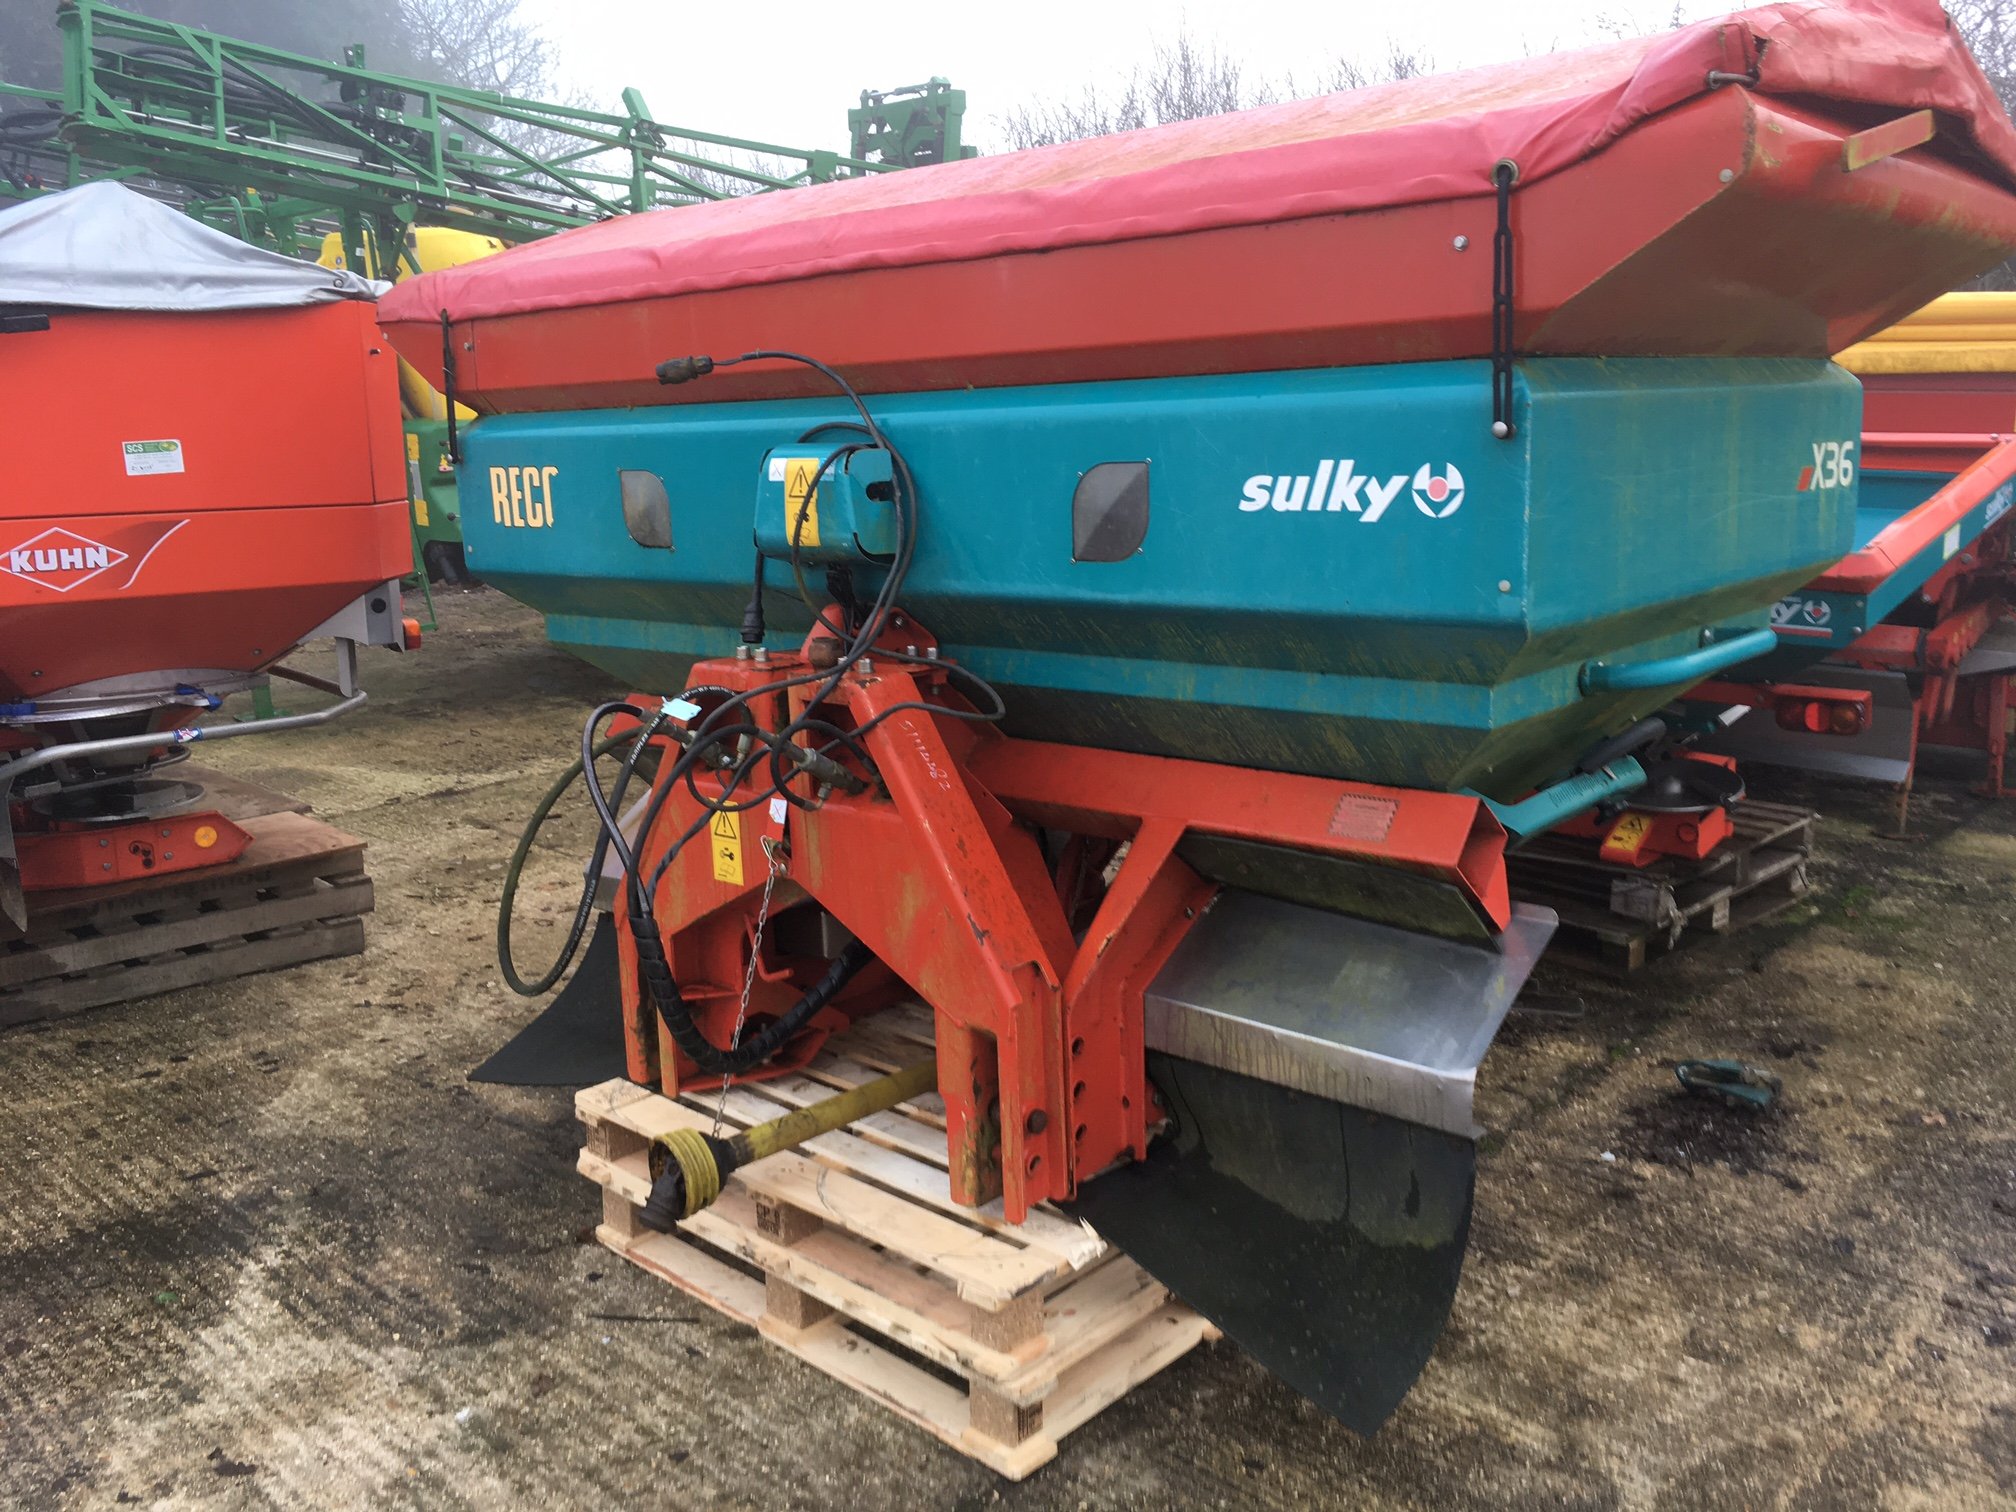 2008 USED SPREADER . X36 FERT SPREADER